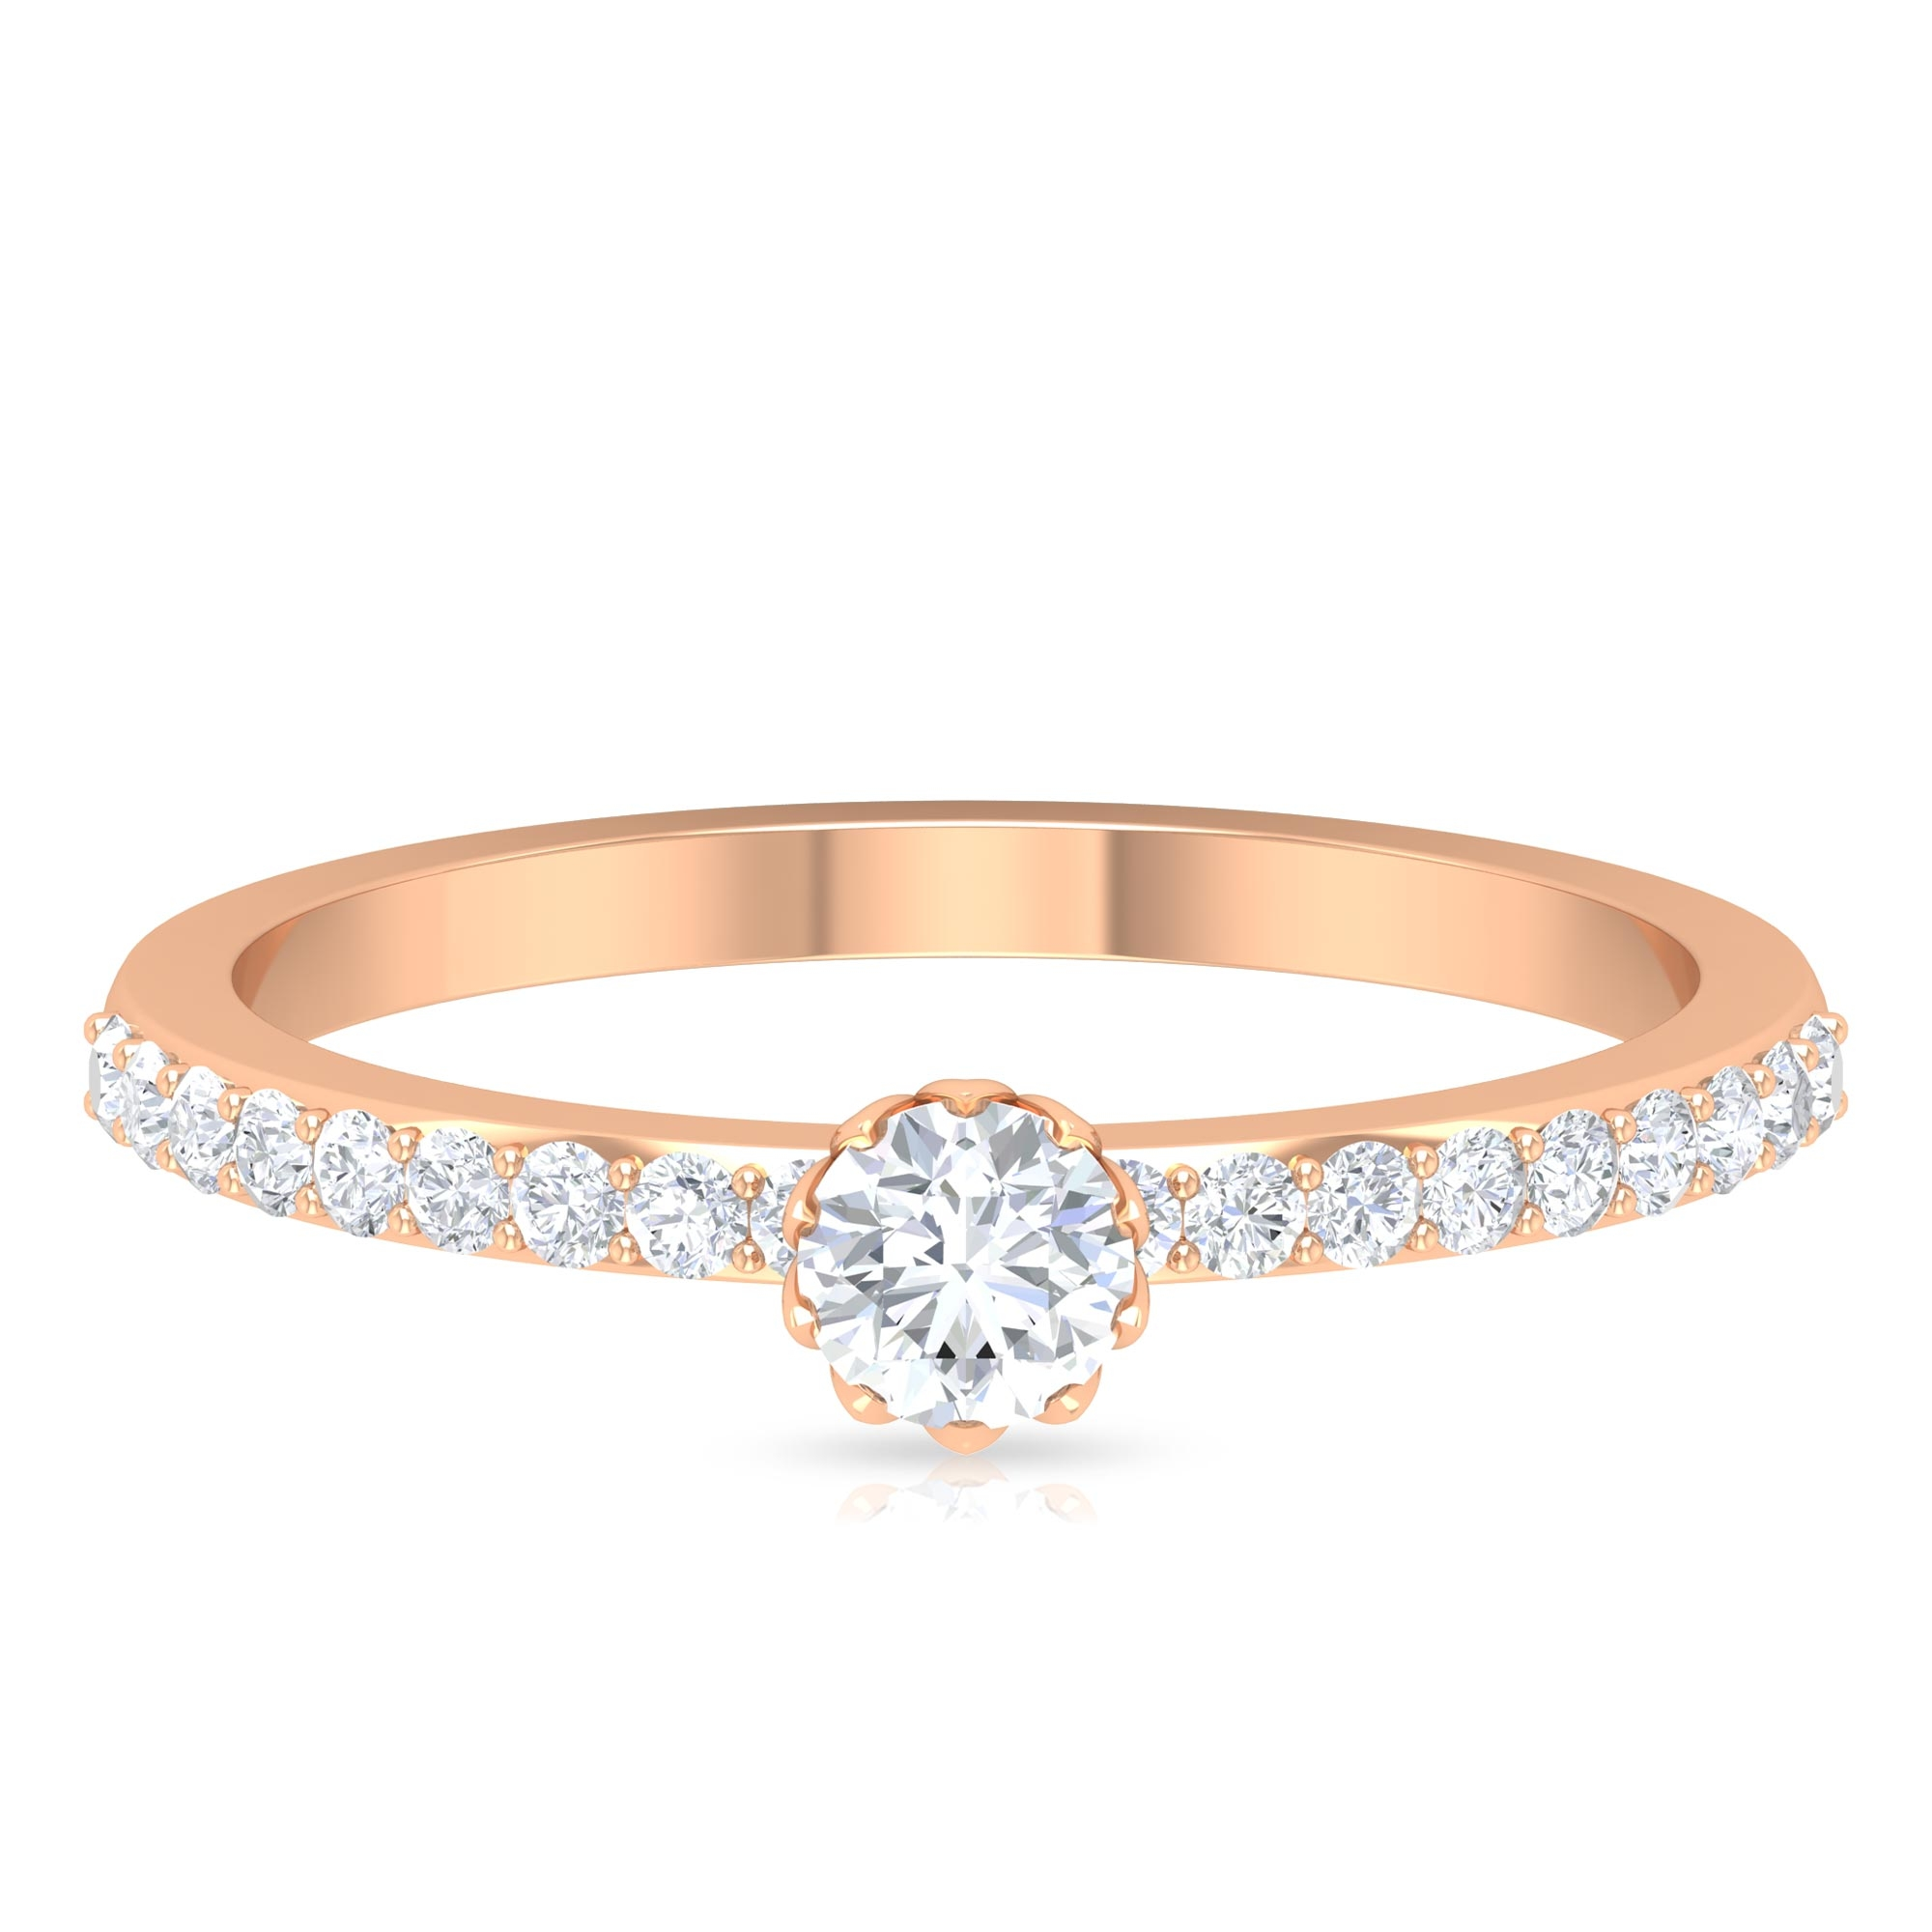 1/2 CT Round Cut Diamond Solitaire Ring in Lotus Basket Setting with Surface Side Stones